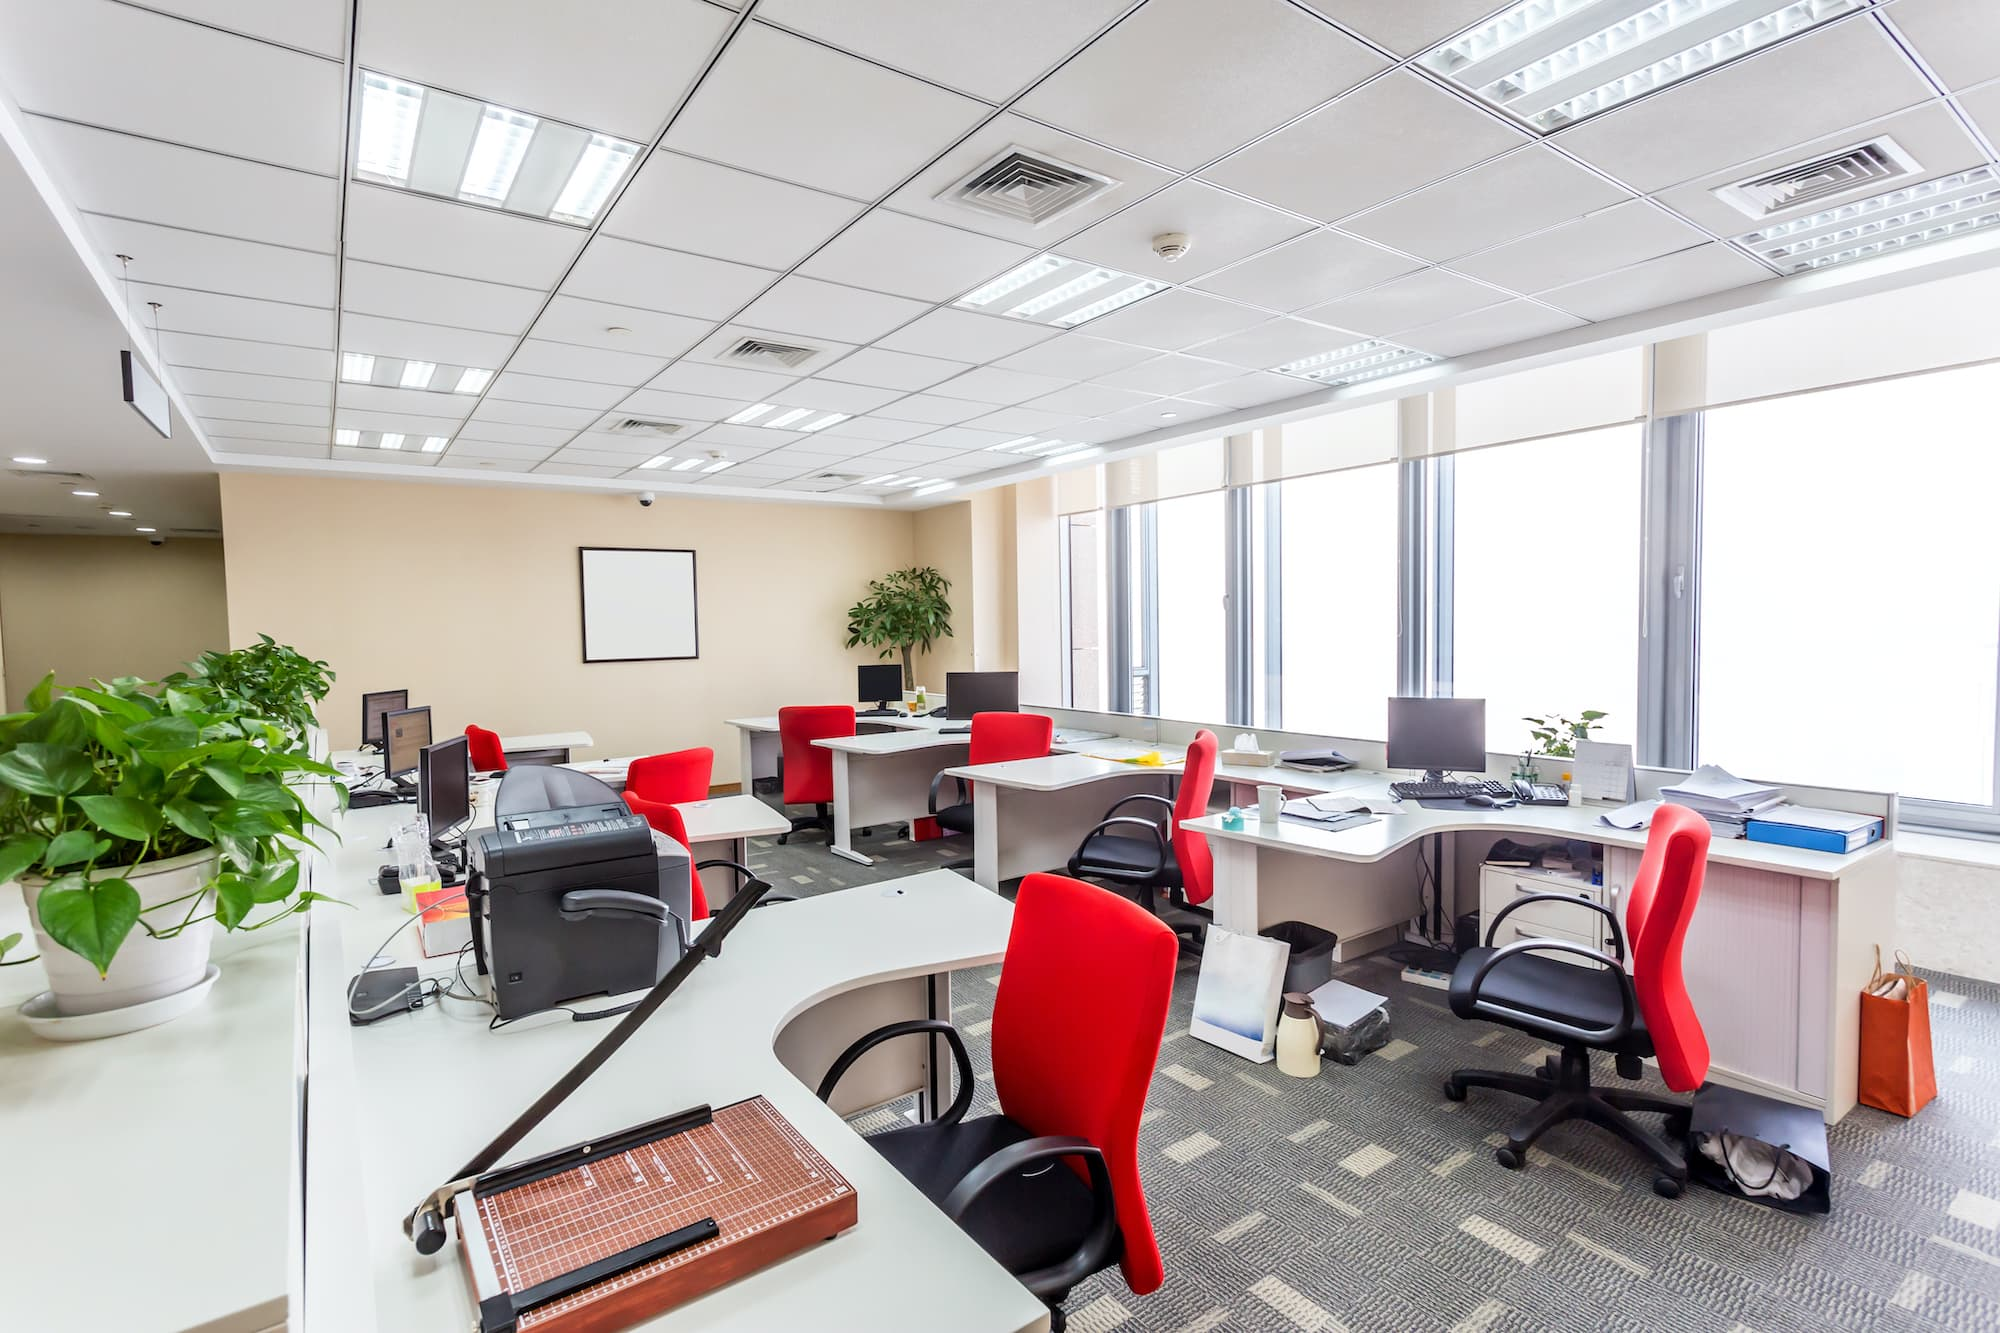 Office Clearance - Office Furniture 2 Go Ltd